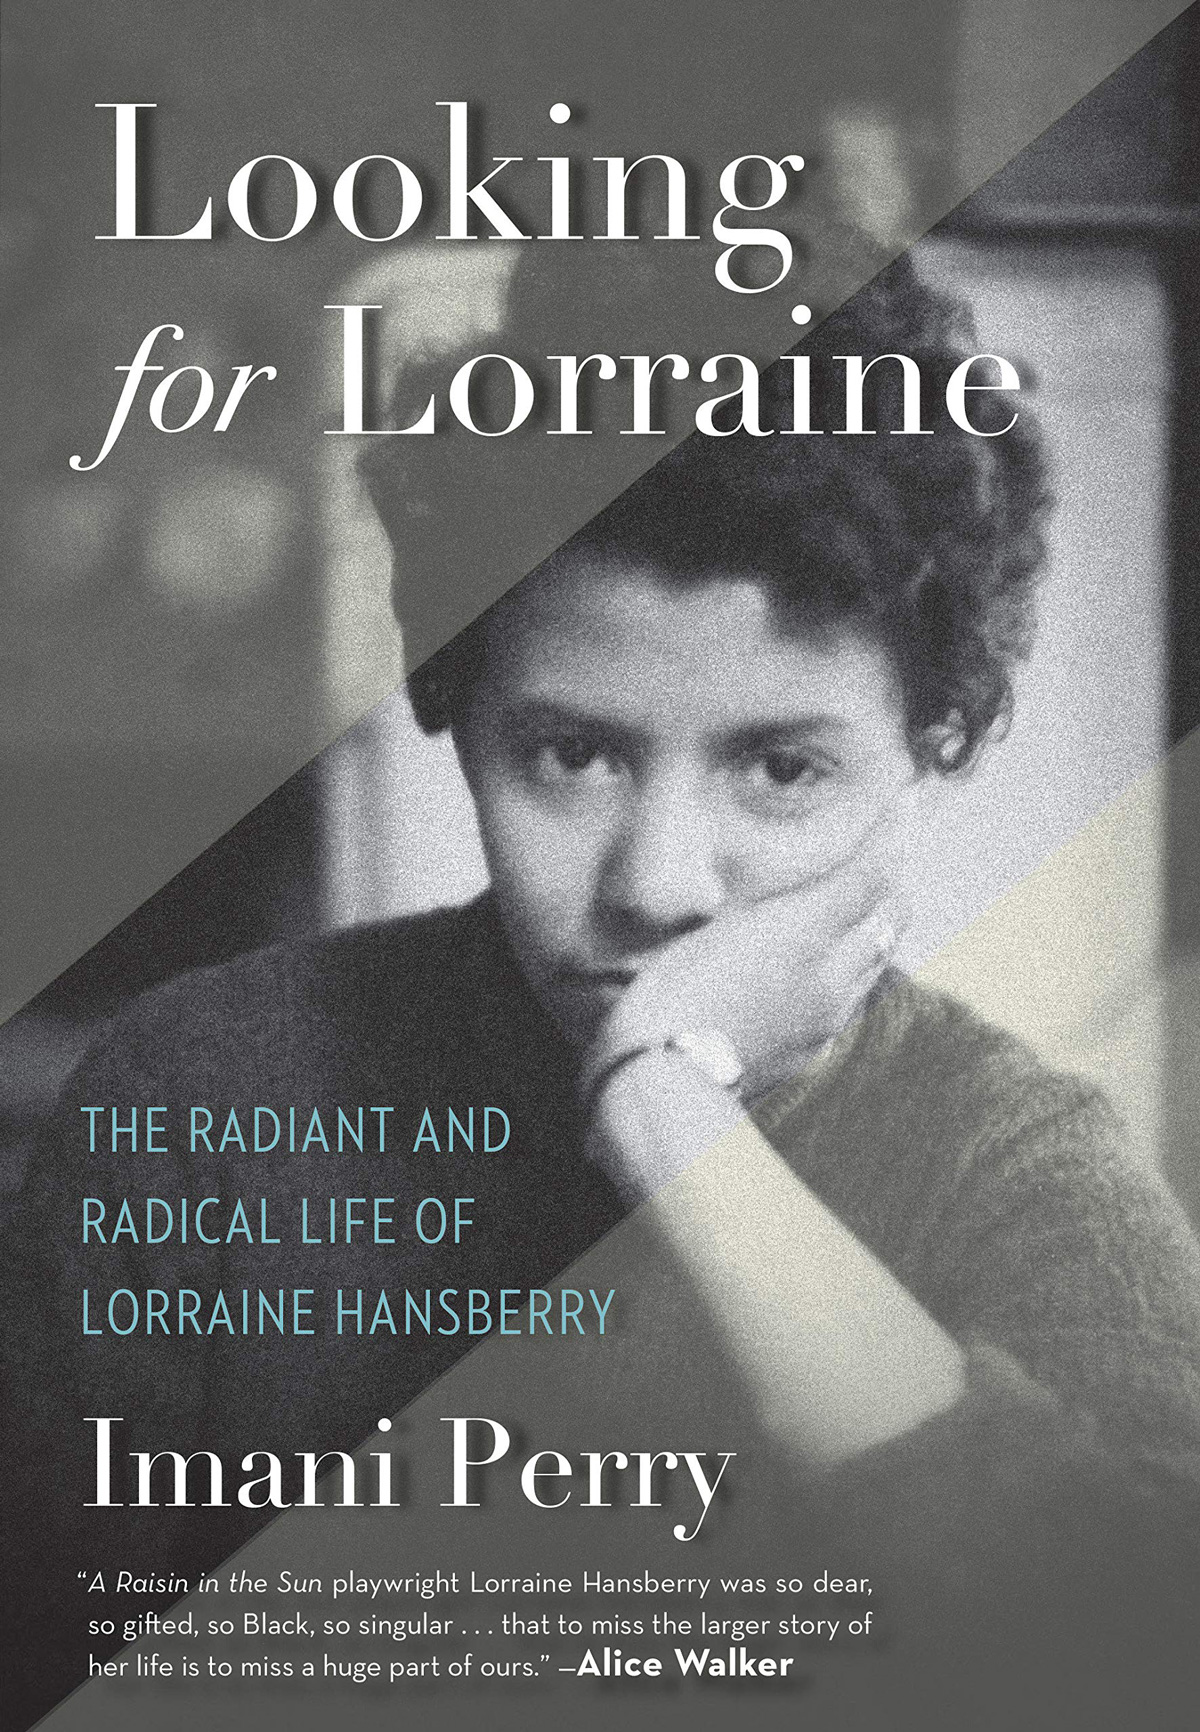 Lorraine Hansberry, the Love of Freedom, and the Freedom of Love